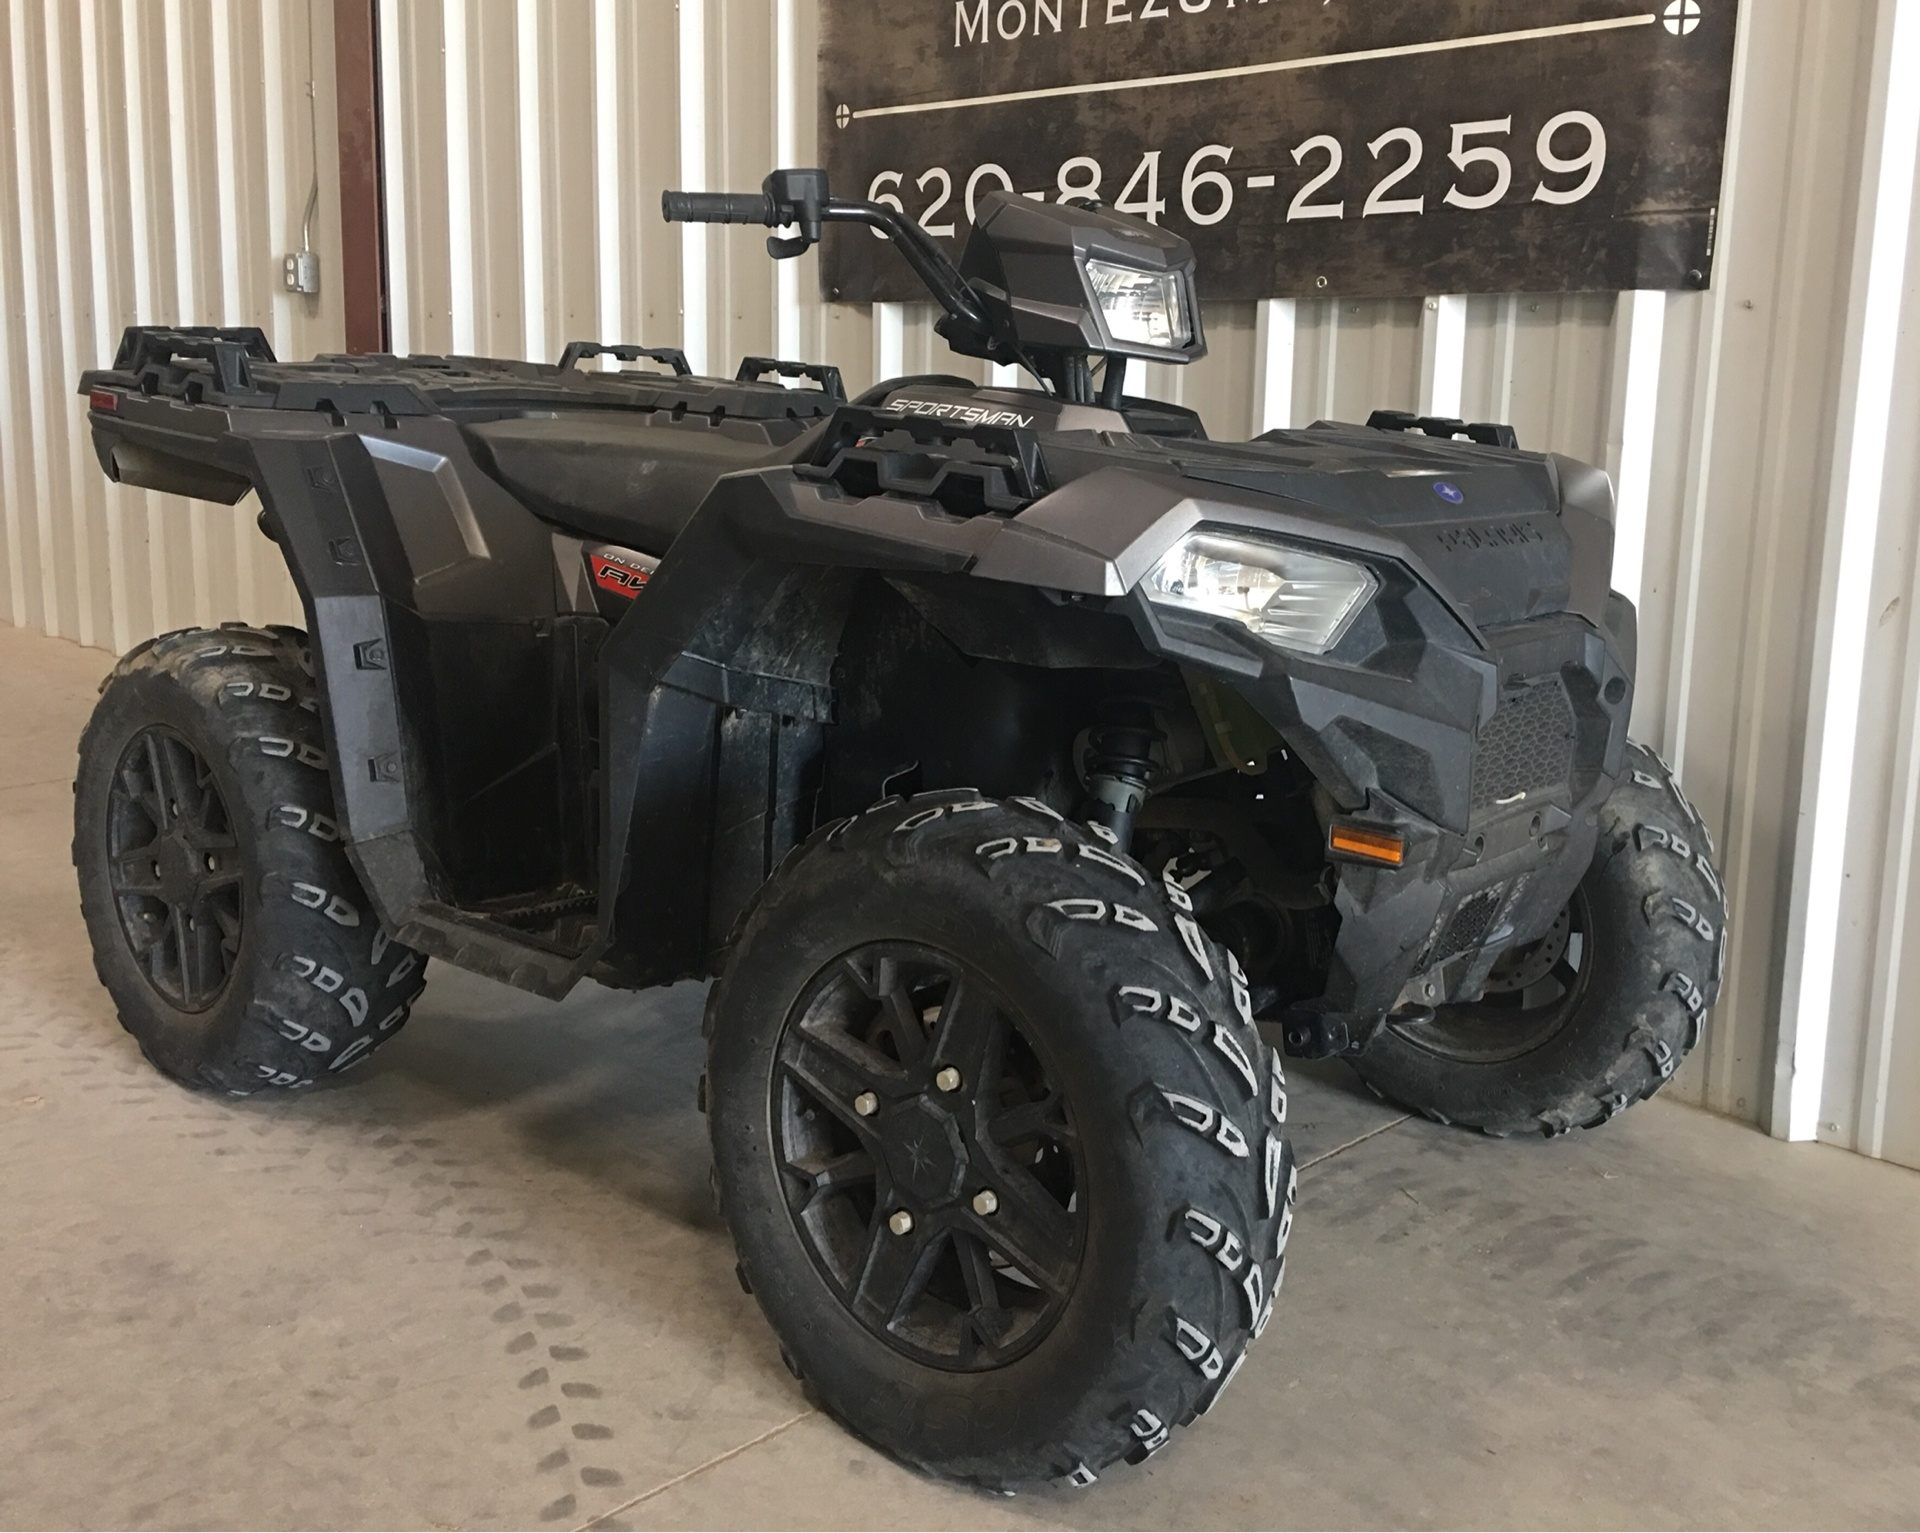 2018 Polaris Sportsman 850 SP in Montezuma, Kansas - Photo 14